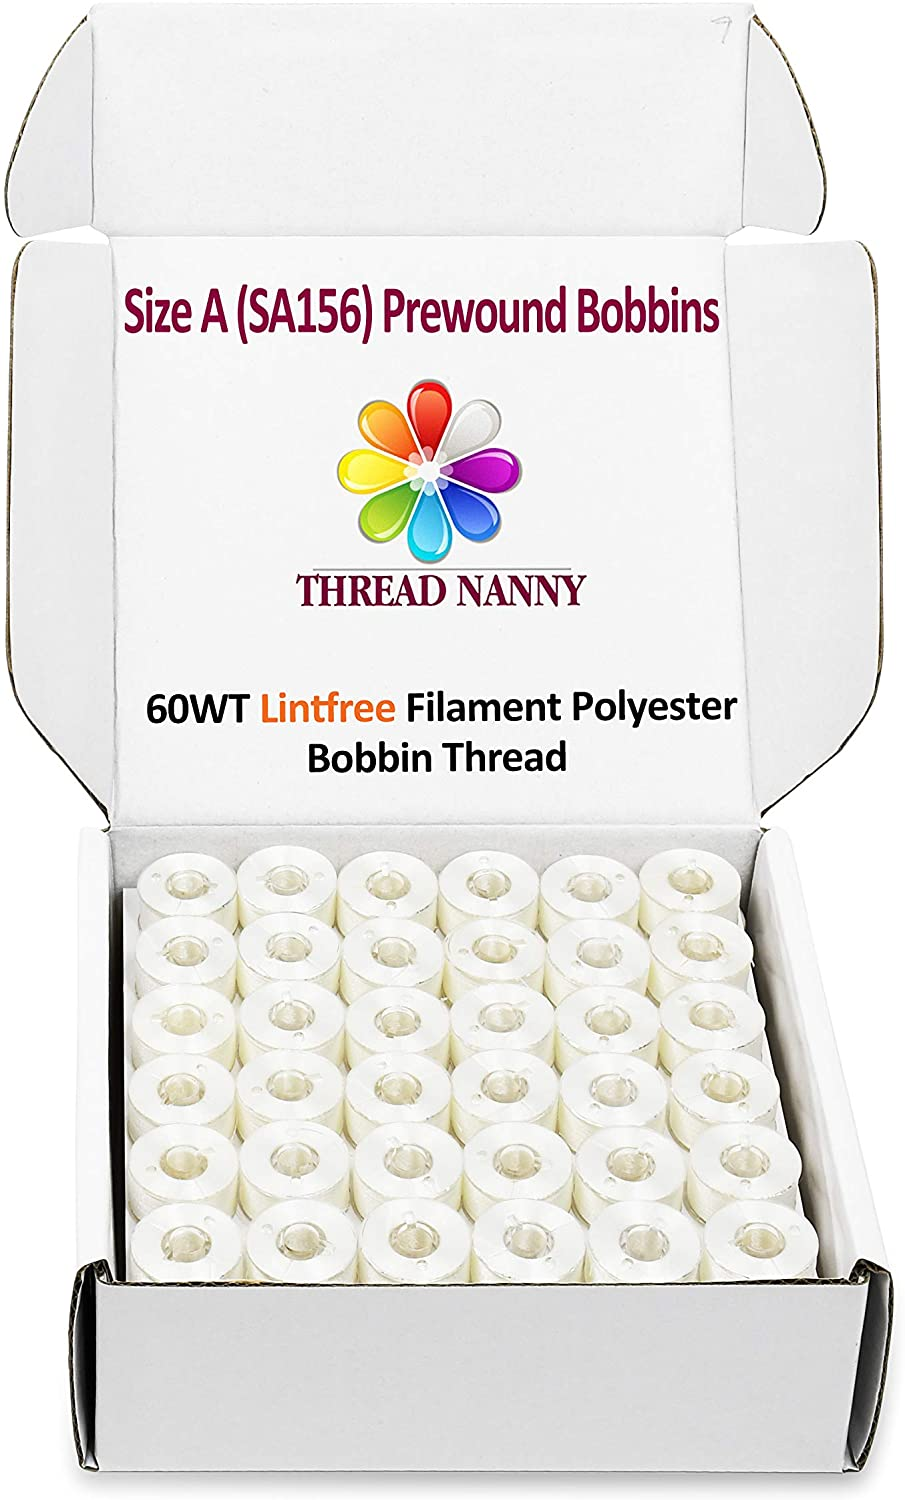 144 White PreWound Bobbins for Embroidery Machines Size A (SA156) Plastic Sided Compatible with Brother Babylock Janome Embroidery Machines